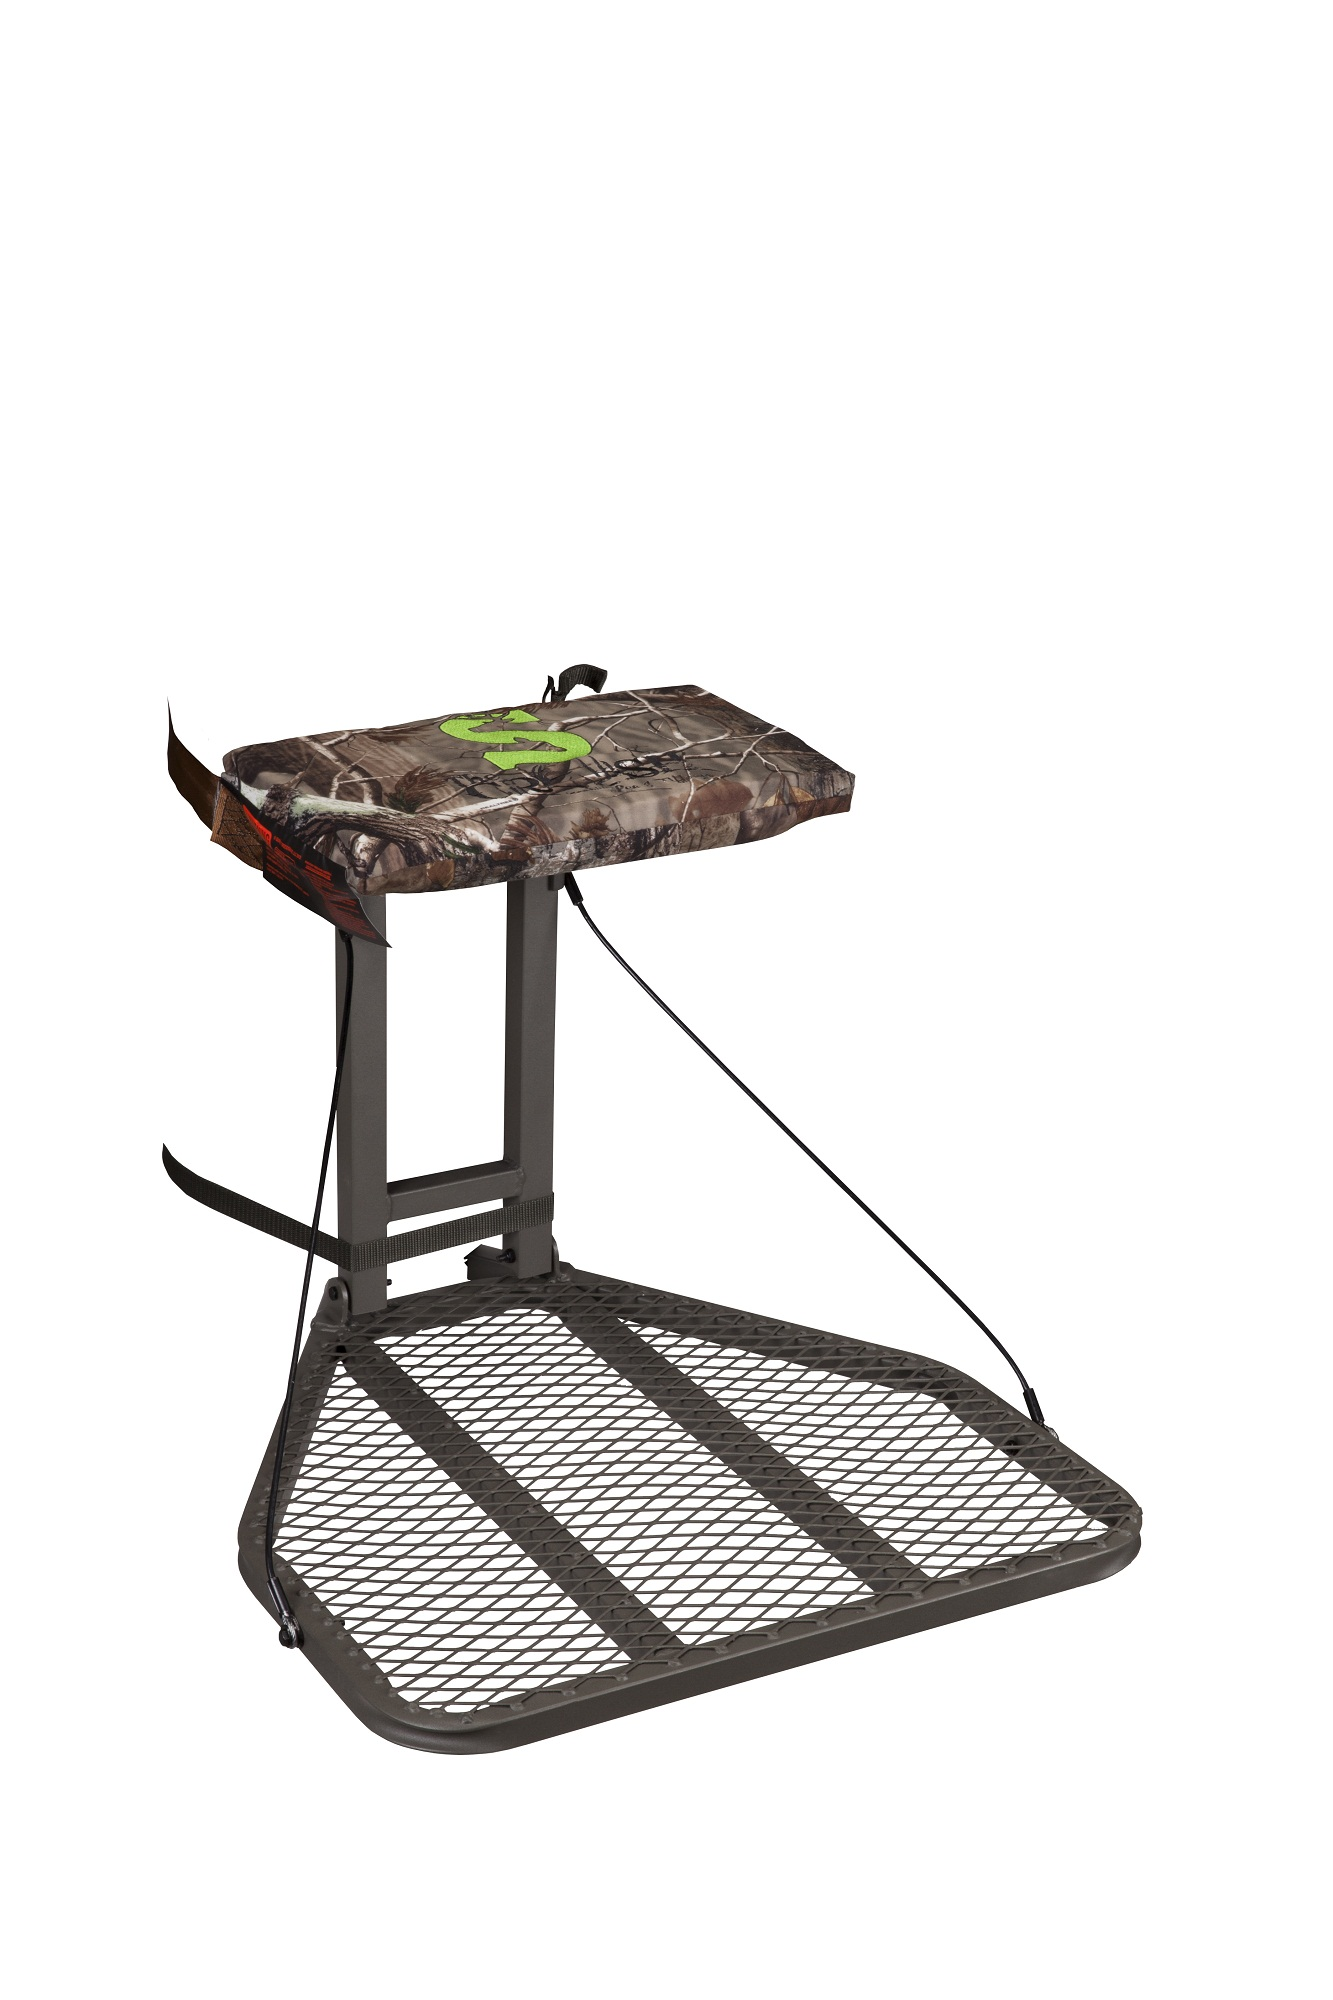 summit trophy chair review navy velvet side crush series stoop hang on treestand